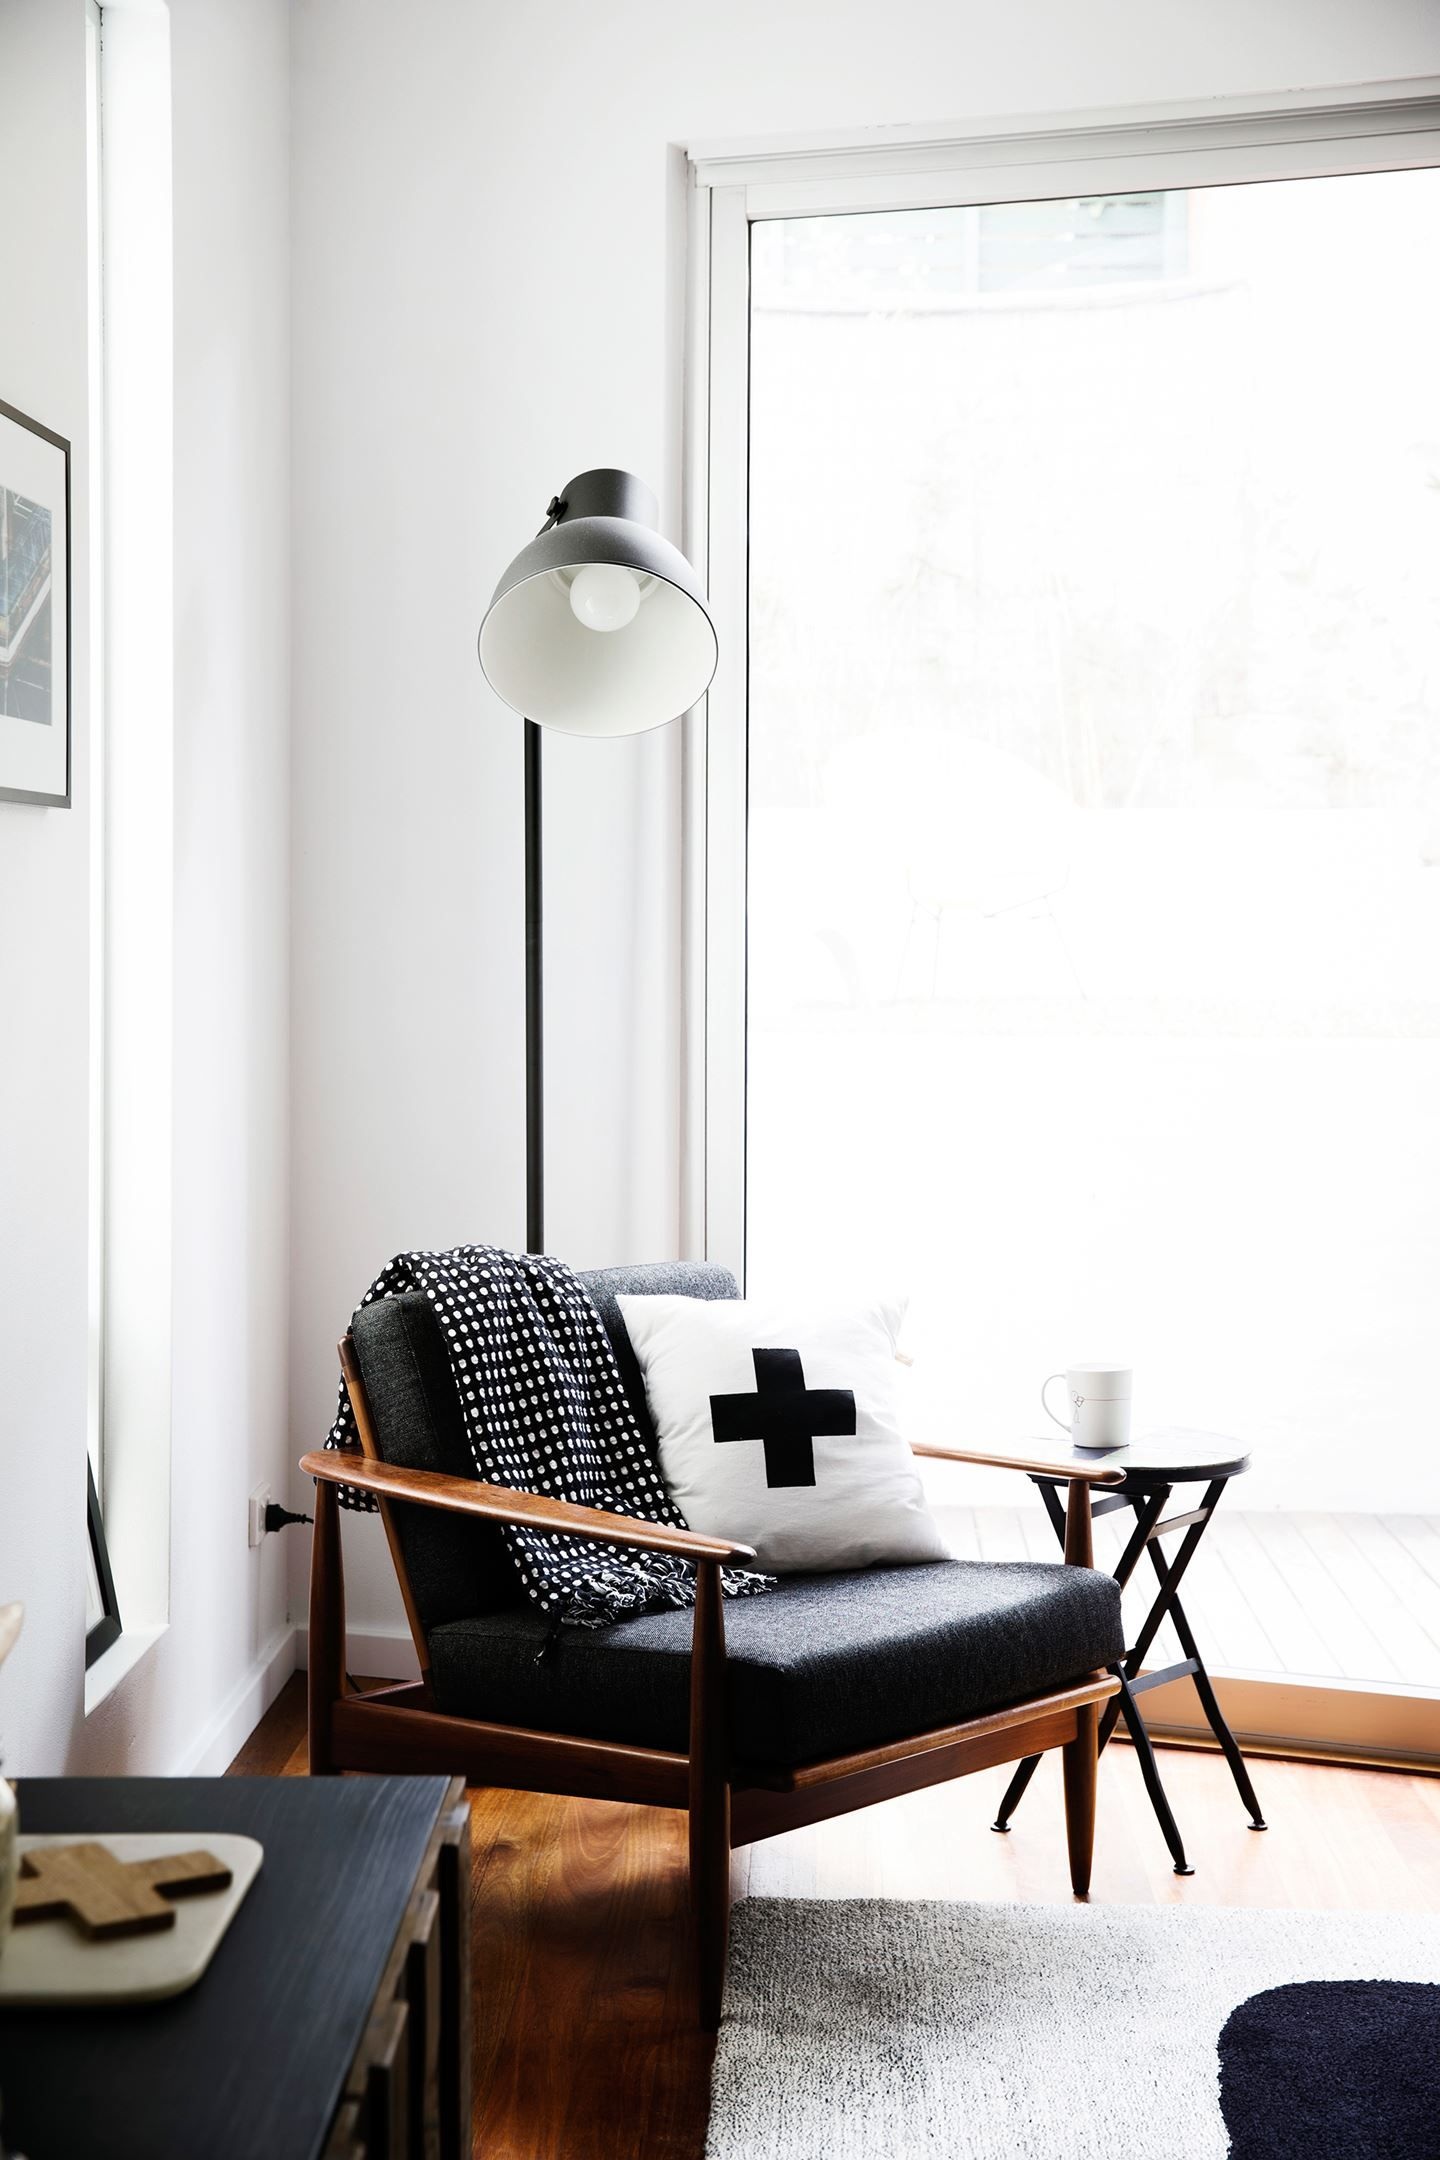 Ikea Reading Chair Health Mark Pro Inversion Reviews Gallery  Clare And Paul 39s Contemporary Family Home